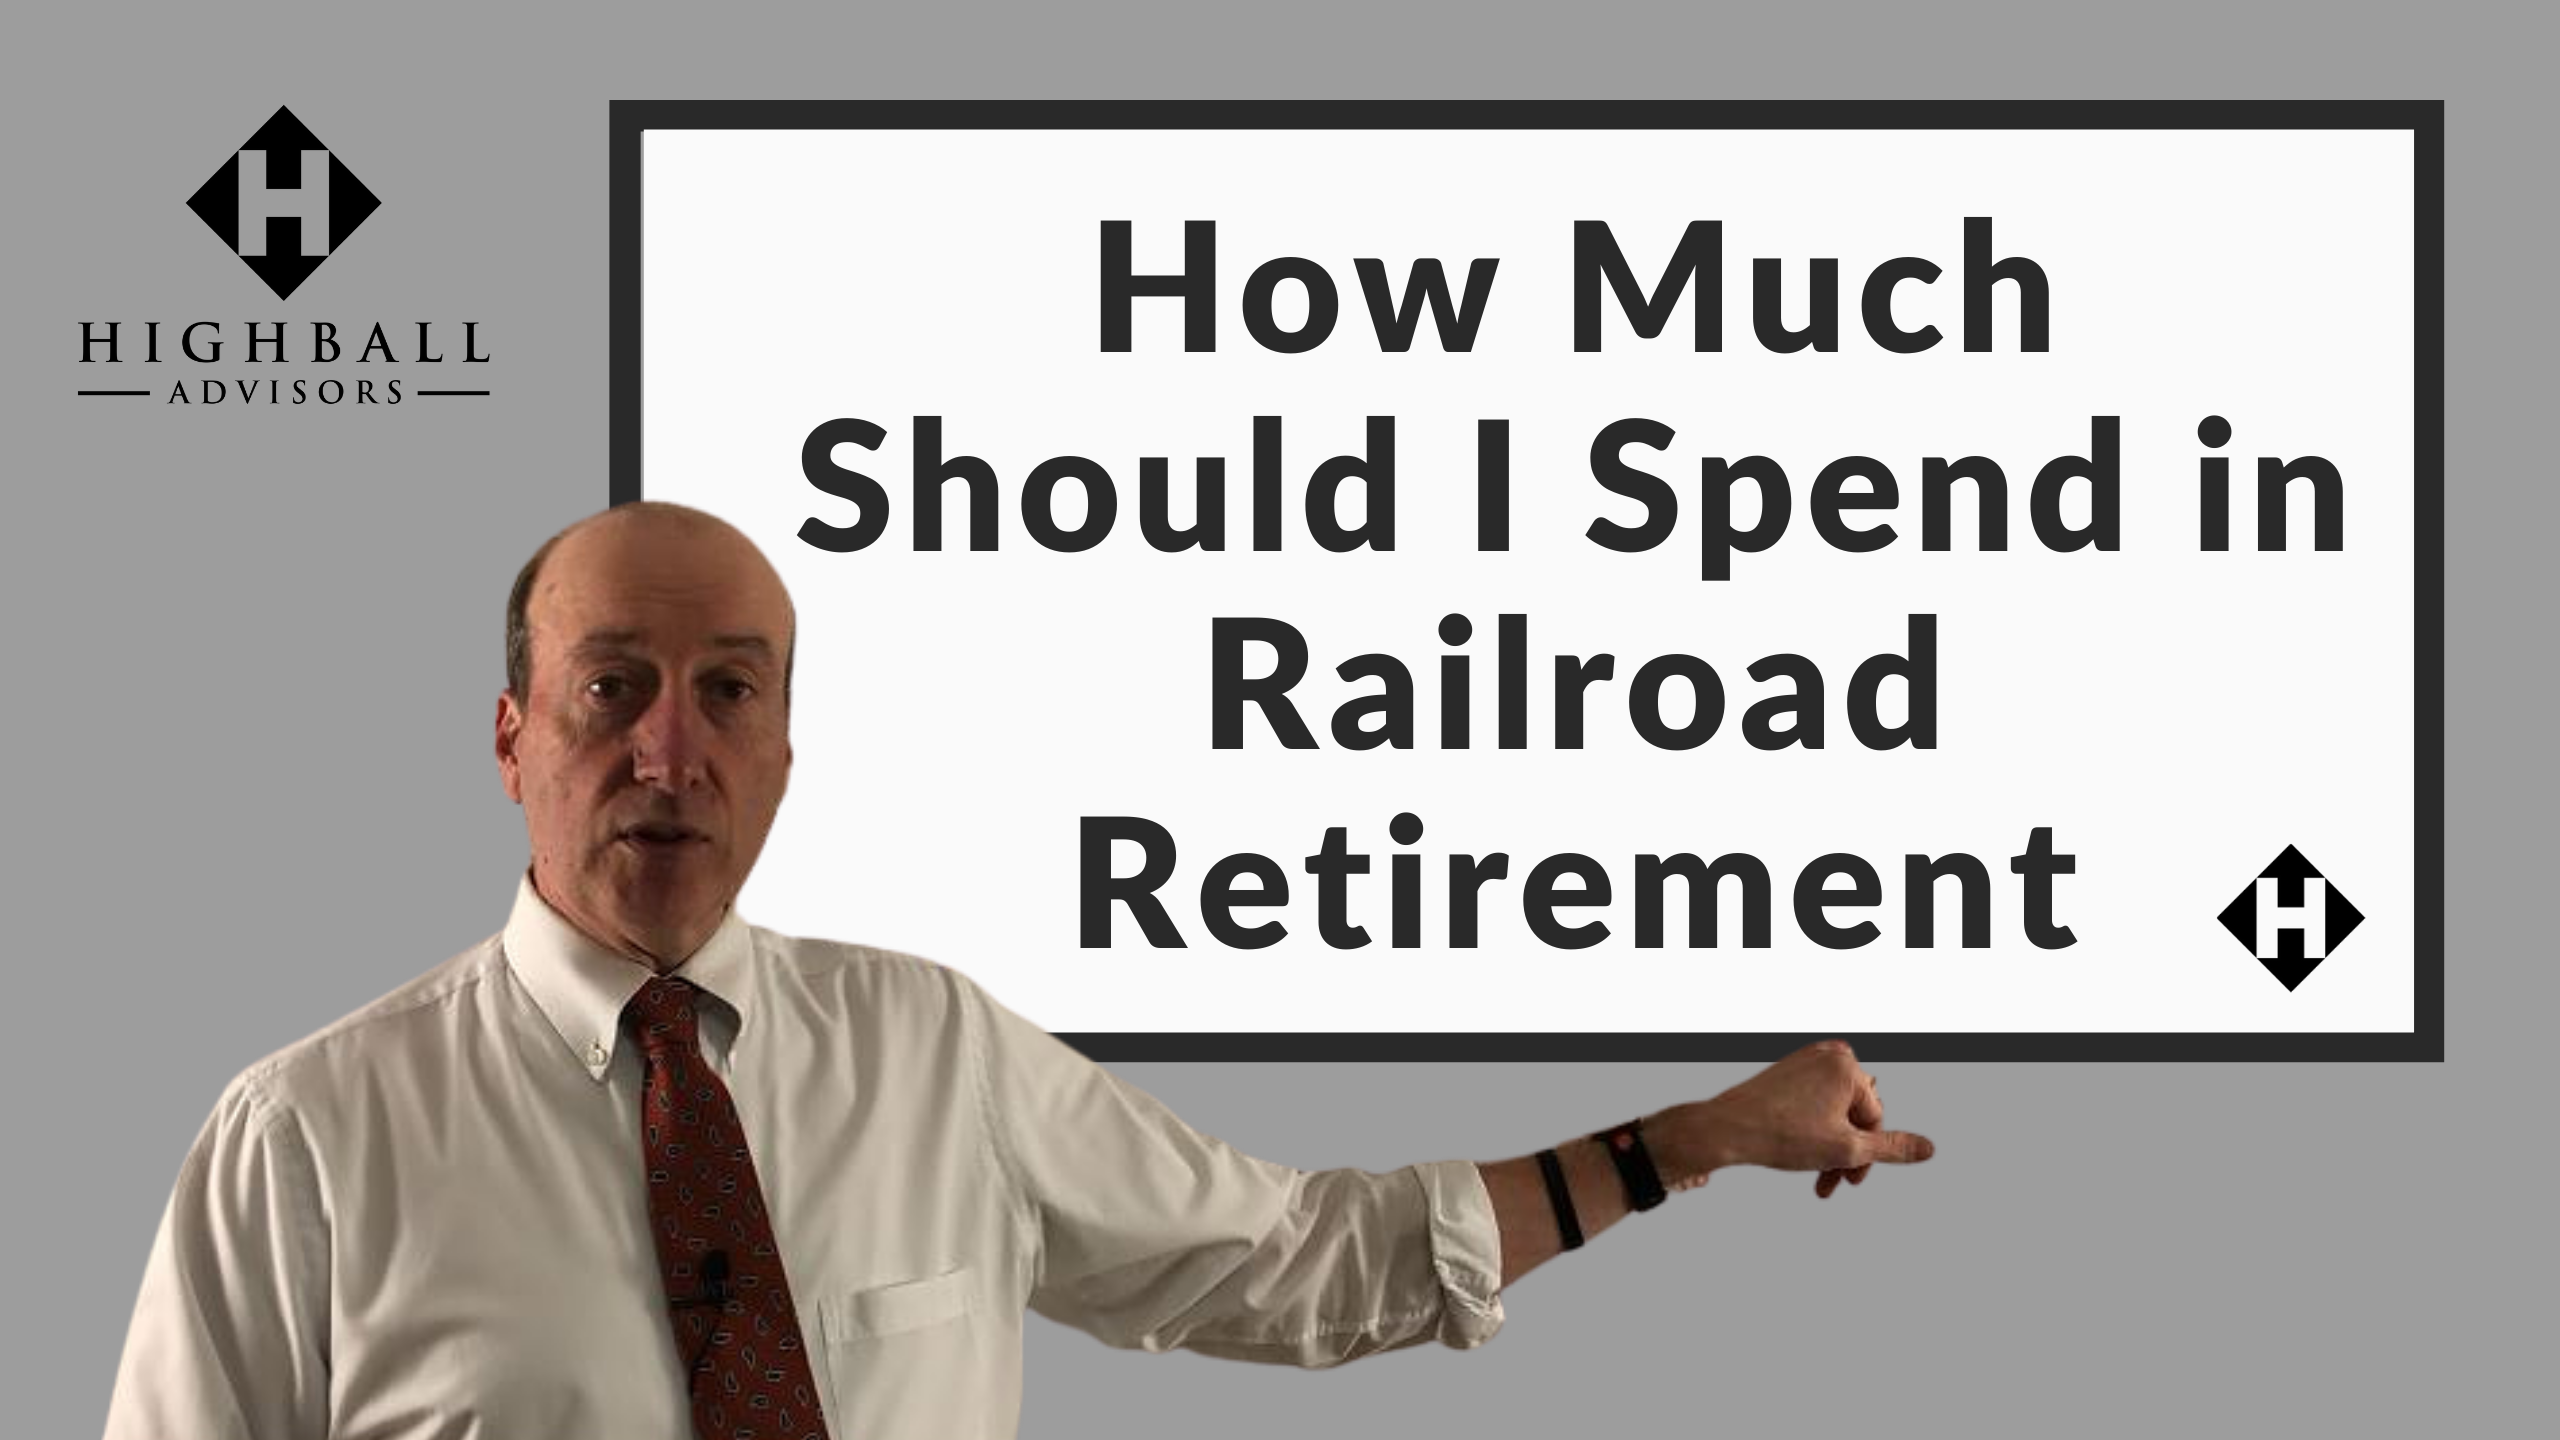 How Much Should I Spend in Railroad Retirement? Thumbnail